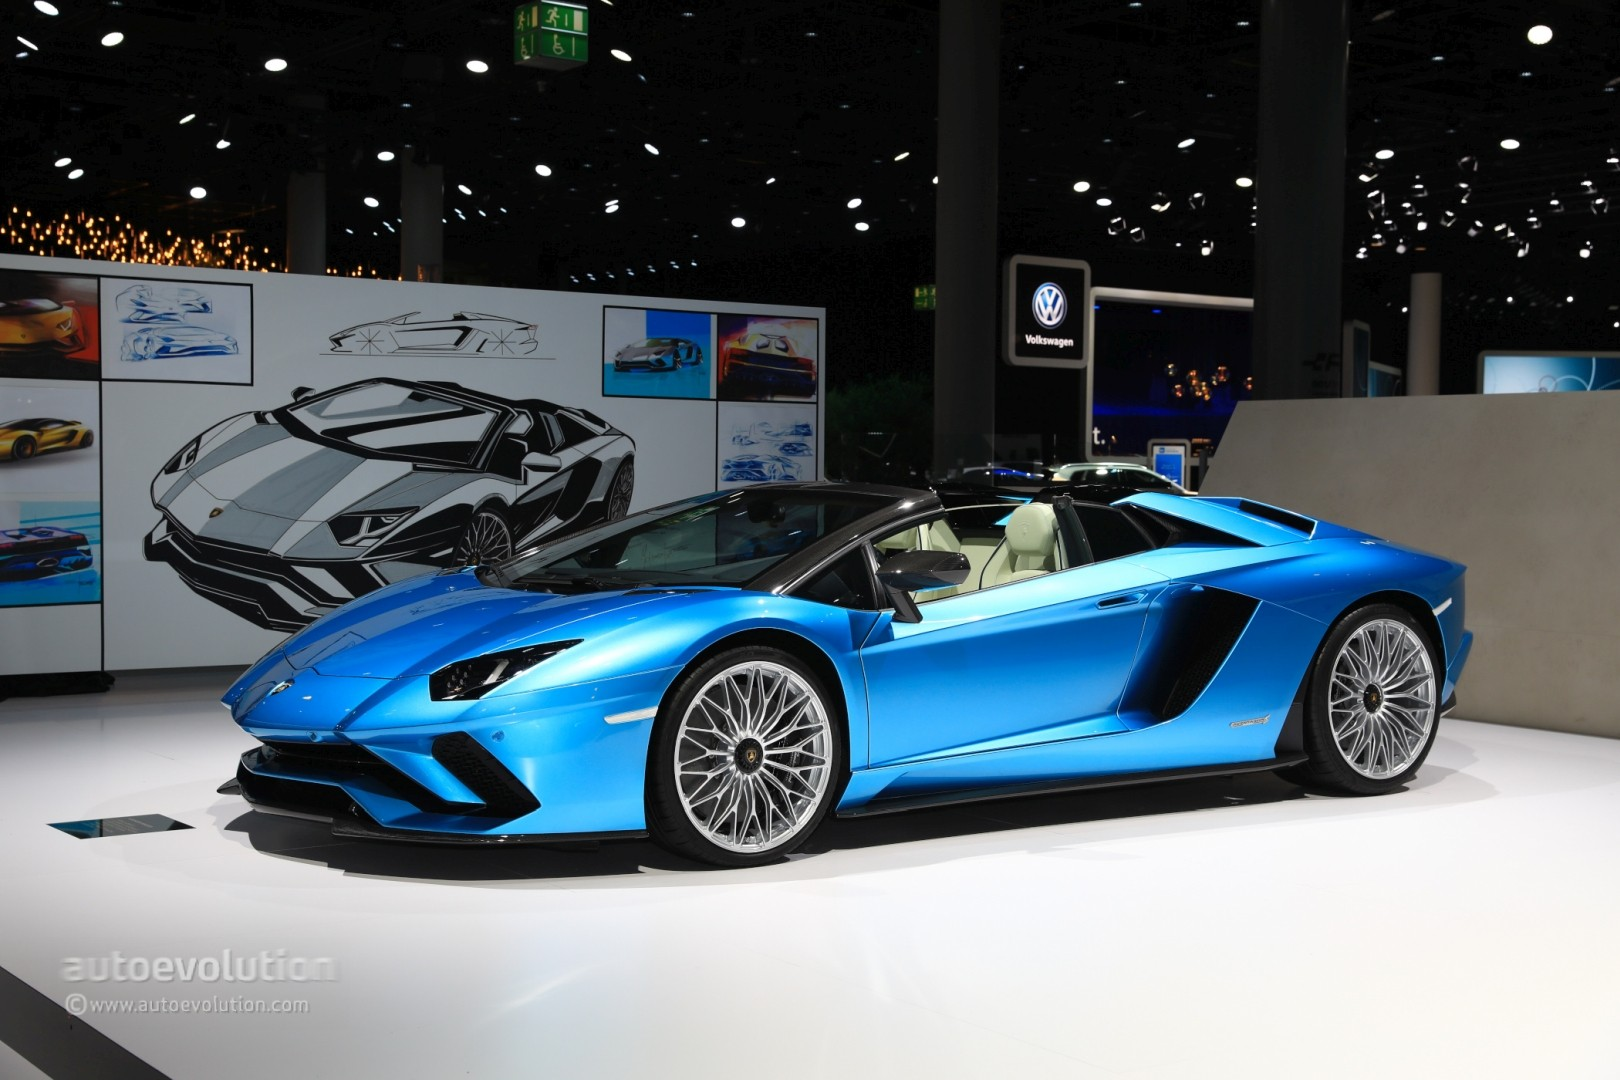 2018 lamborghini aventador s roadster rendered as the supercar we need right now autoevolution. Black Bedroom Furniture Sets. Home Design Ideas